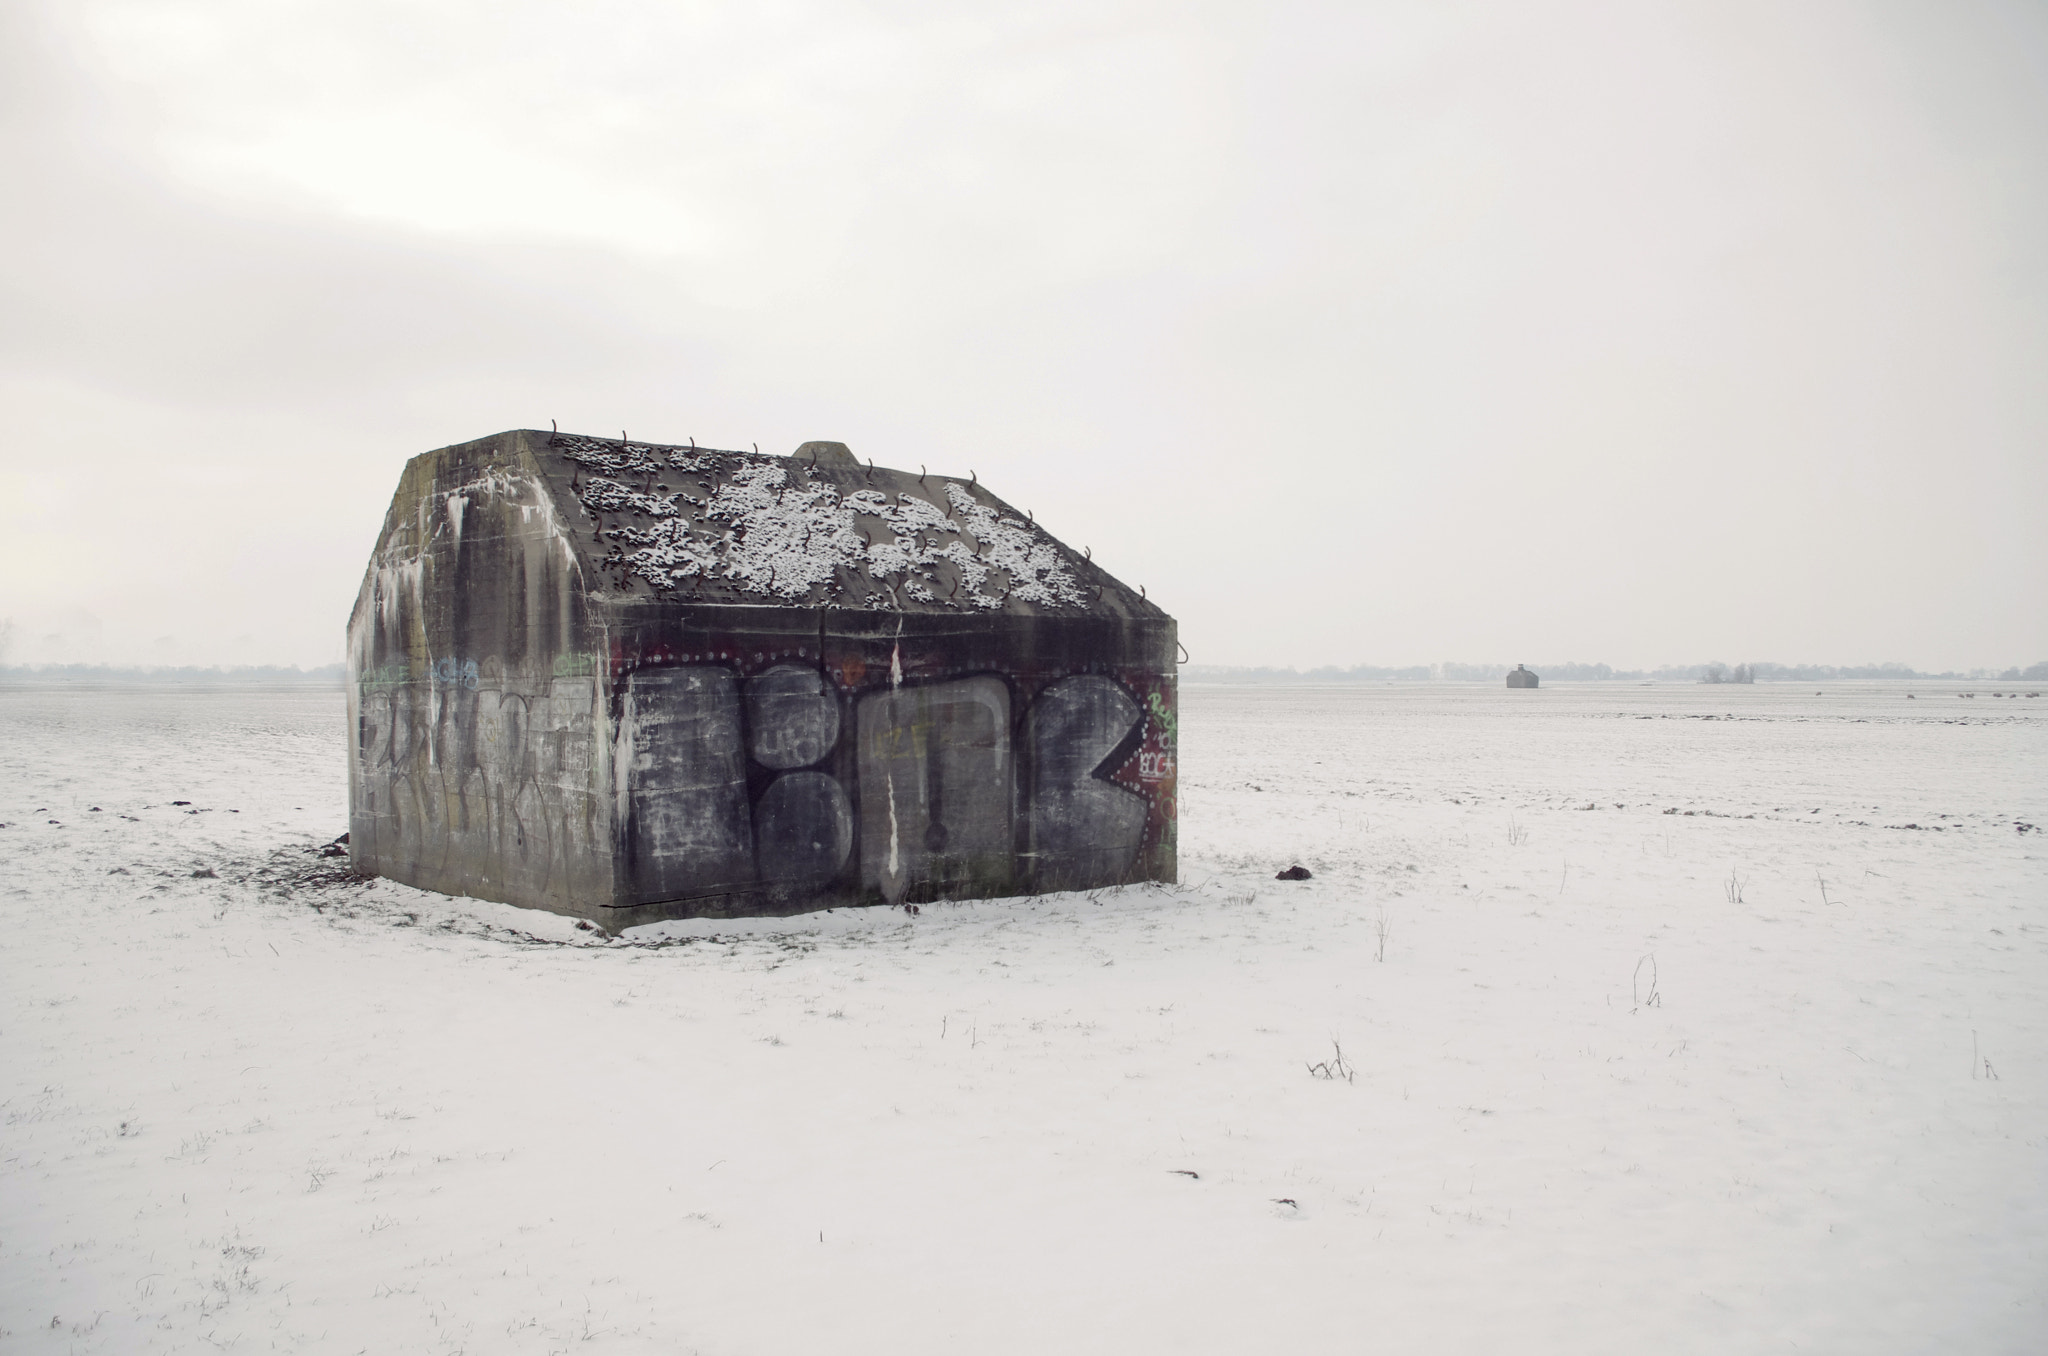 Photograph ww 2 bunkers in the snow by hans hoeben on 500px